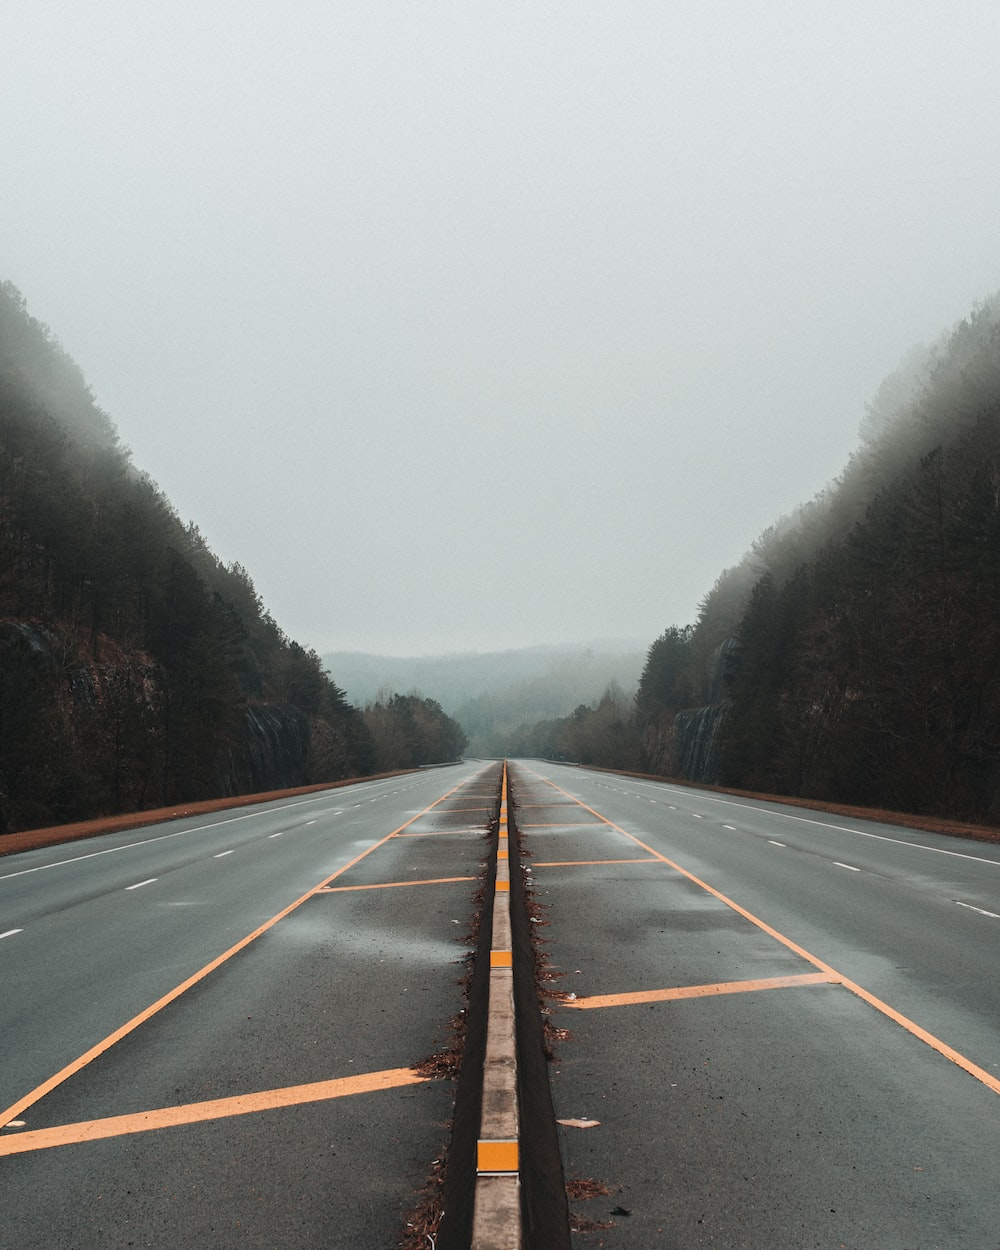 gray concrete road during daytime